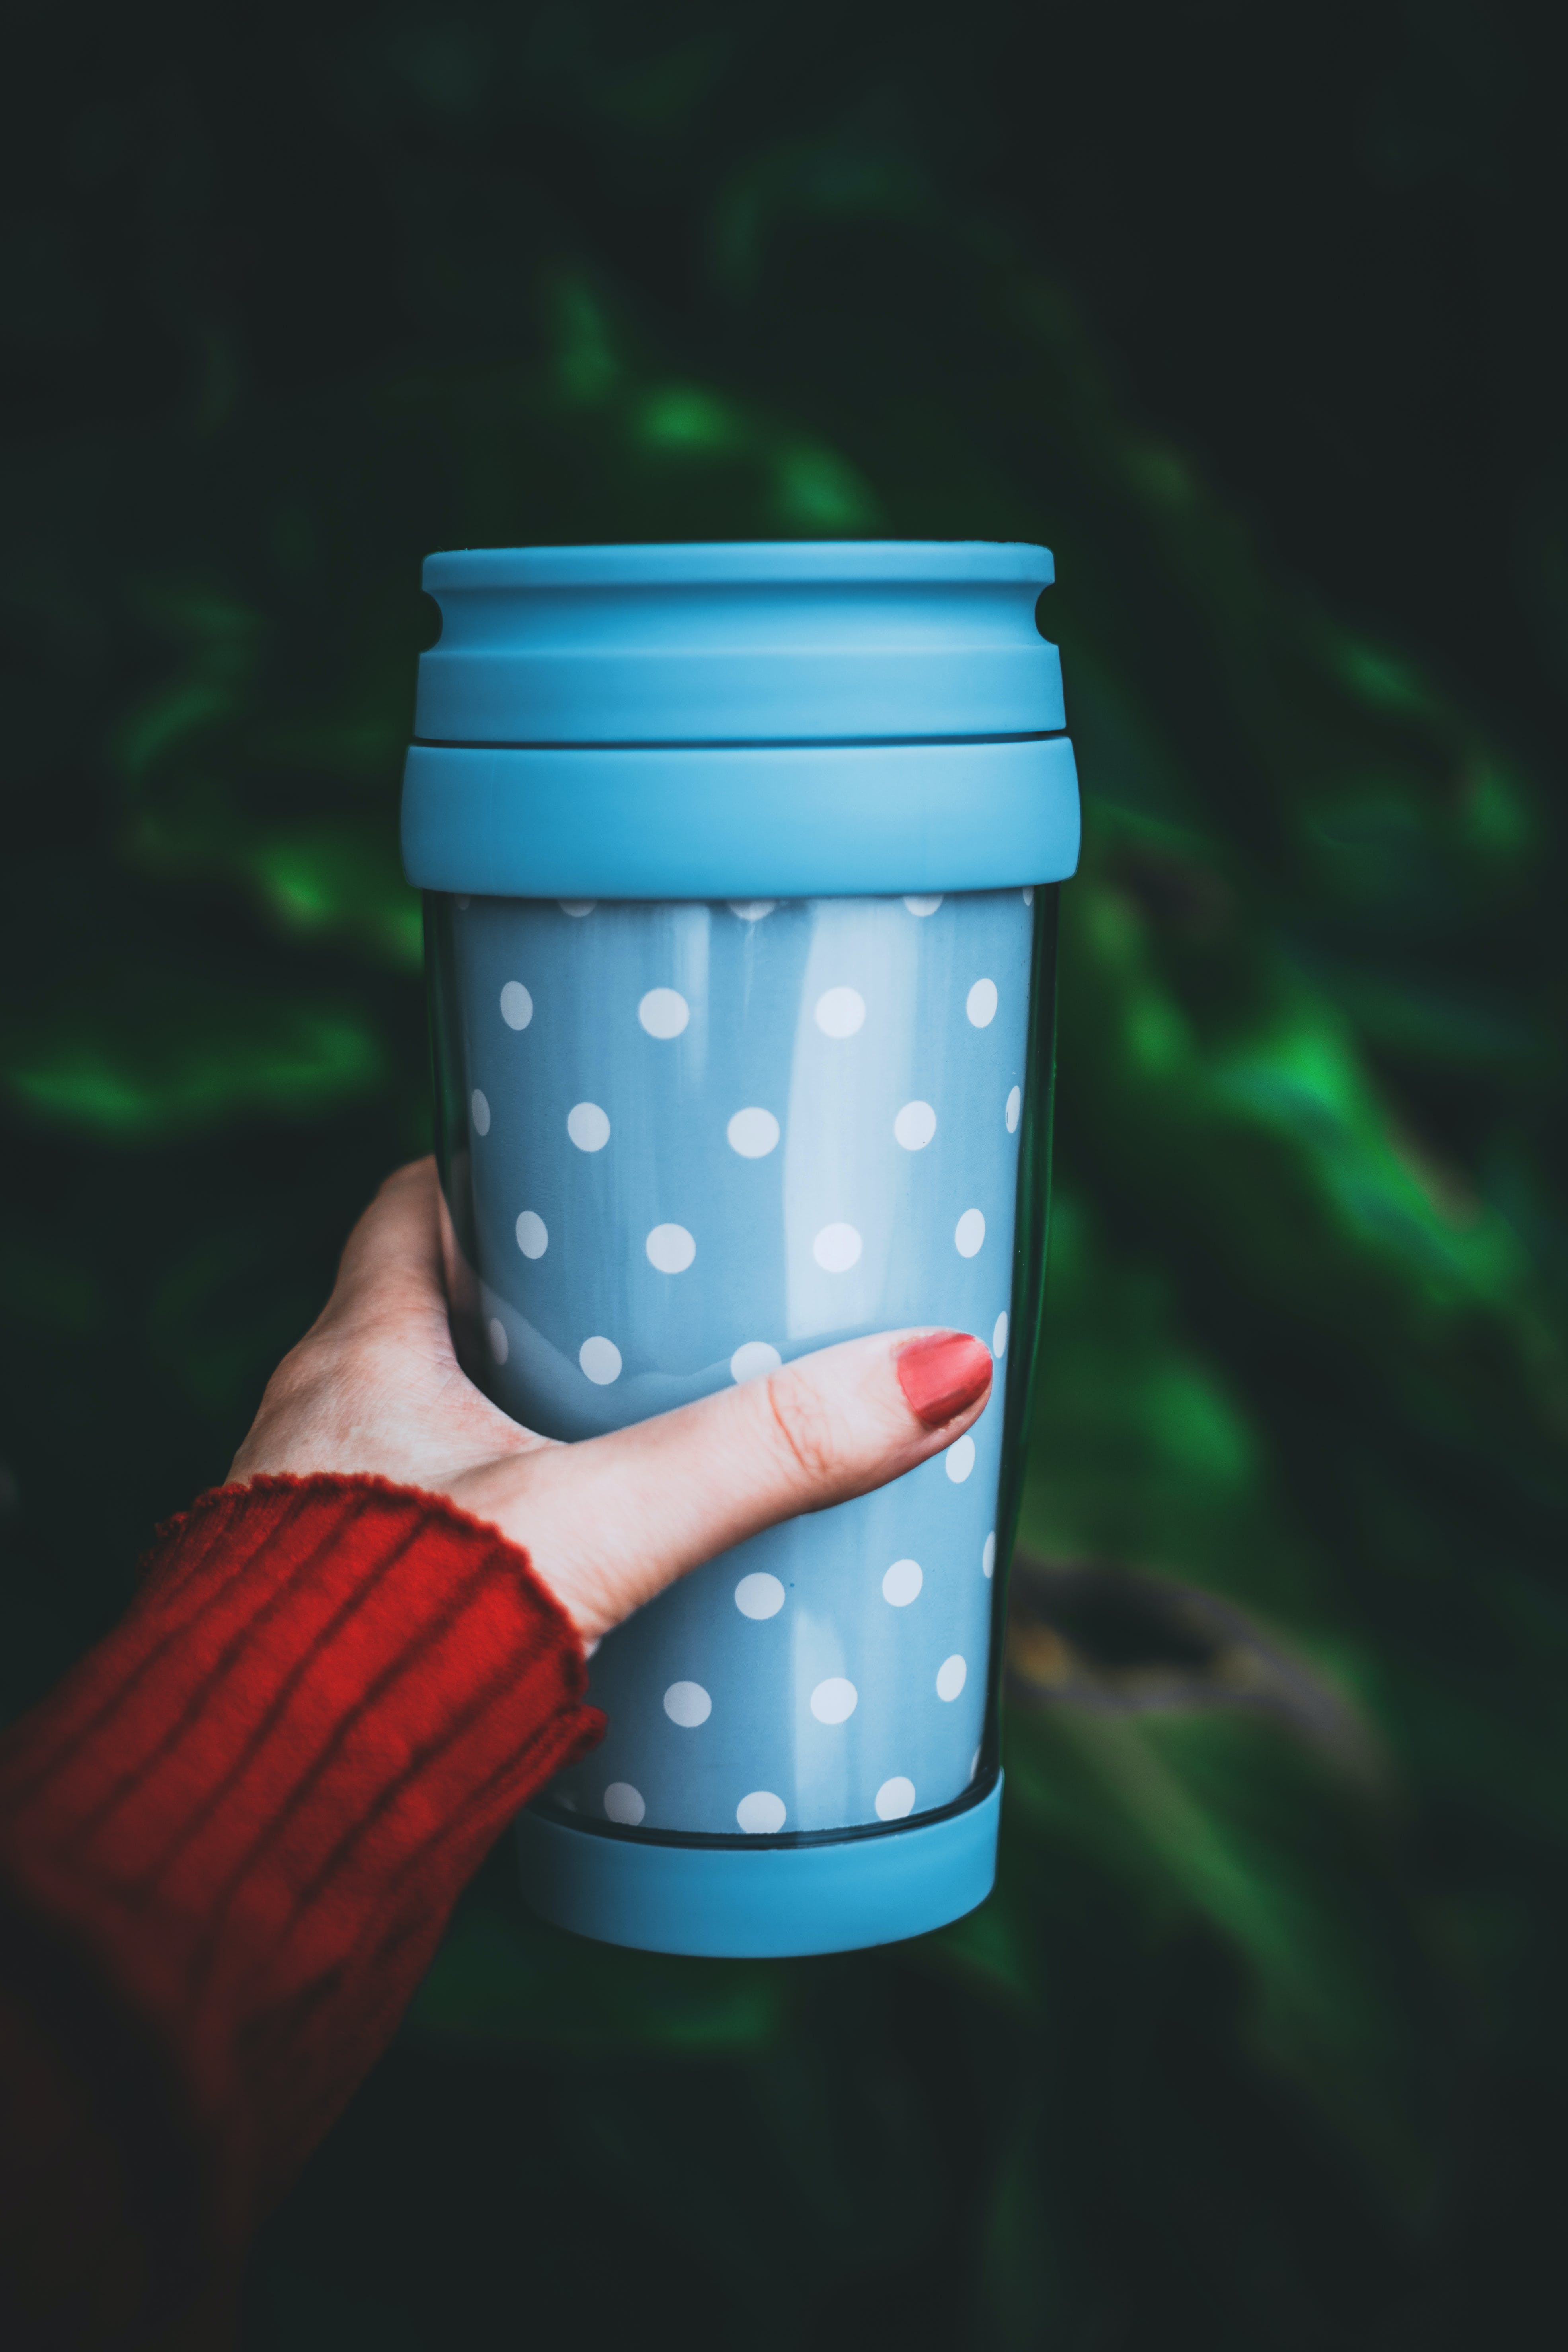 Person Holding Teal and White Polka-dot Tumbler